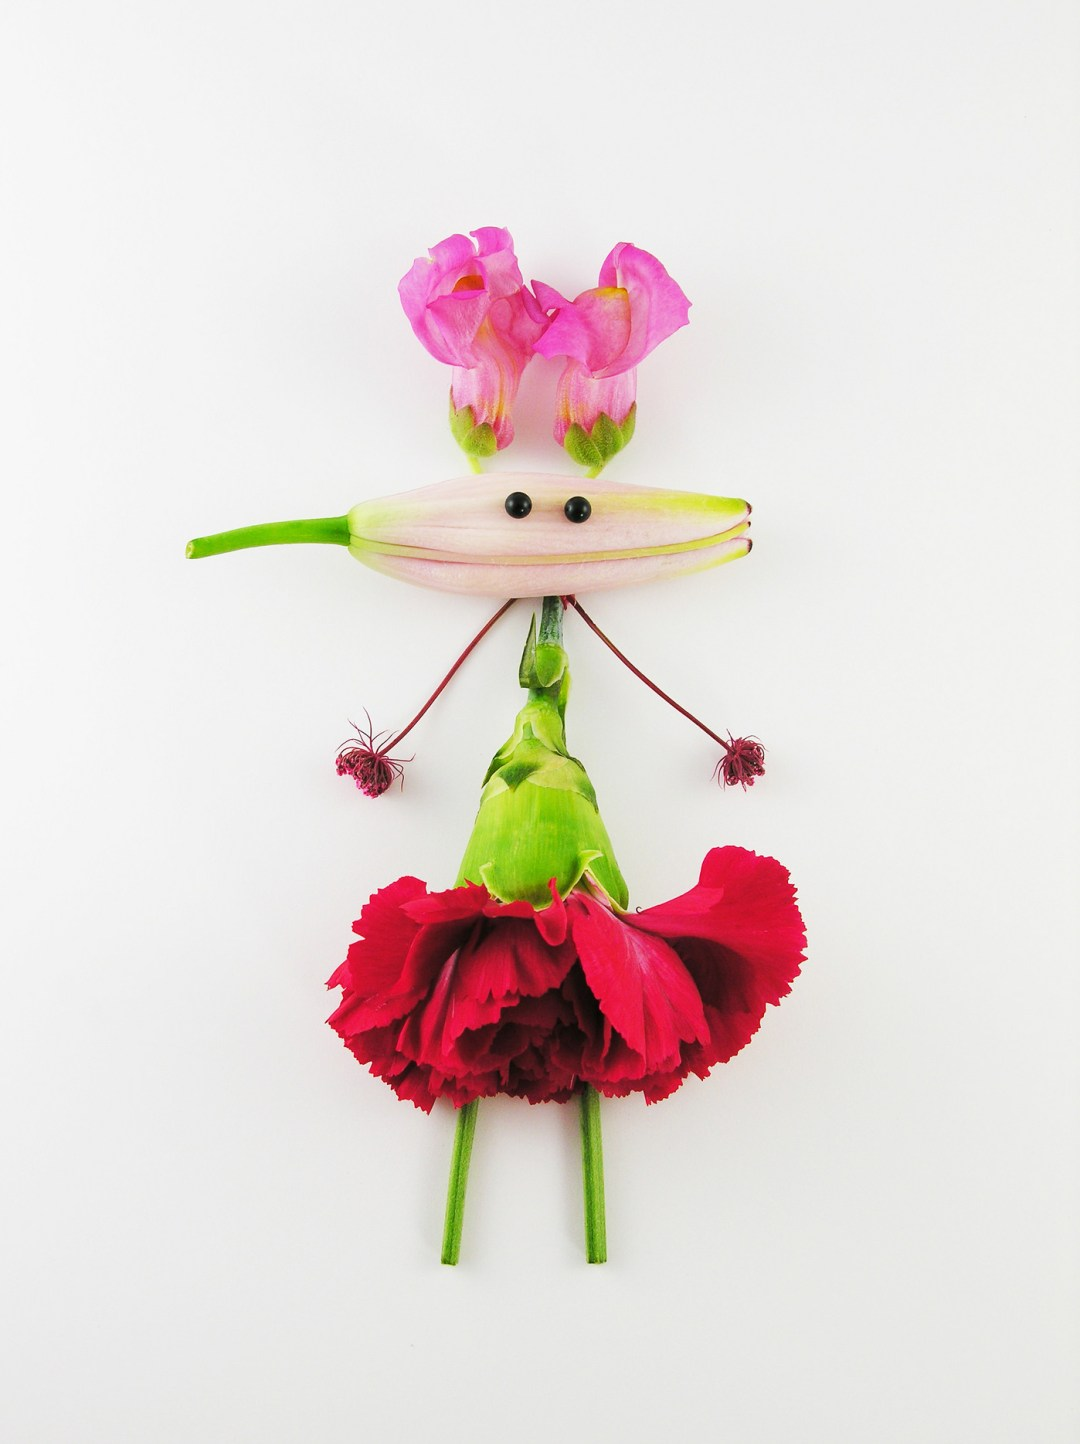 Part of a series of photographs for my book BLOSSOM BUDDIES. Published by teNeues.